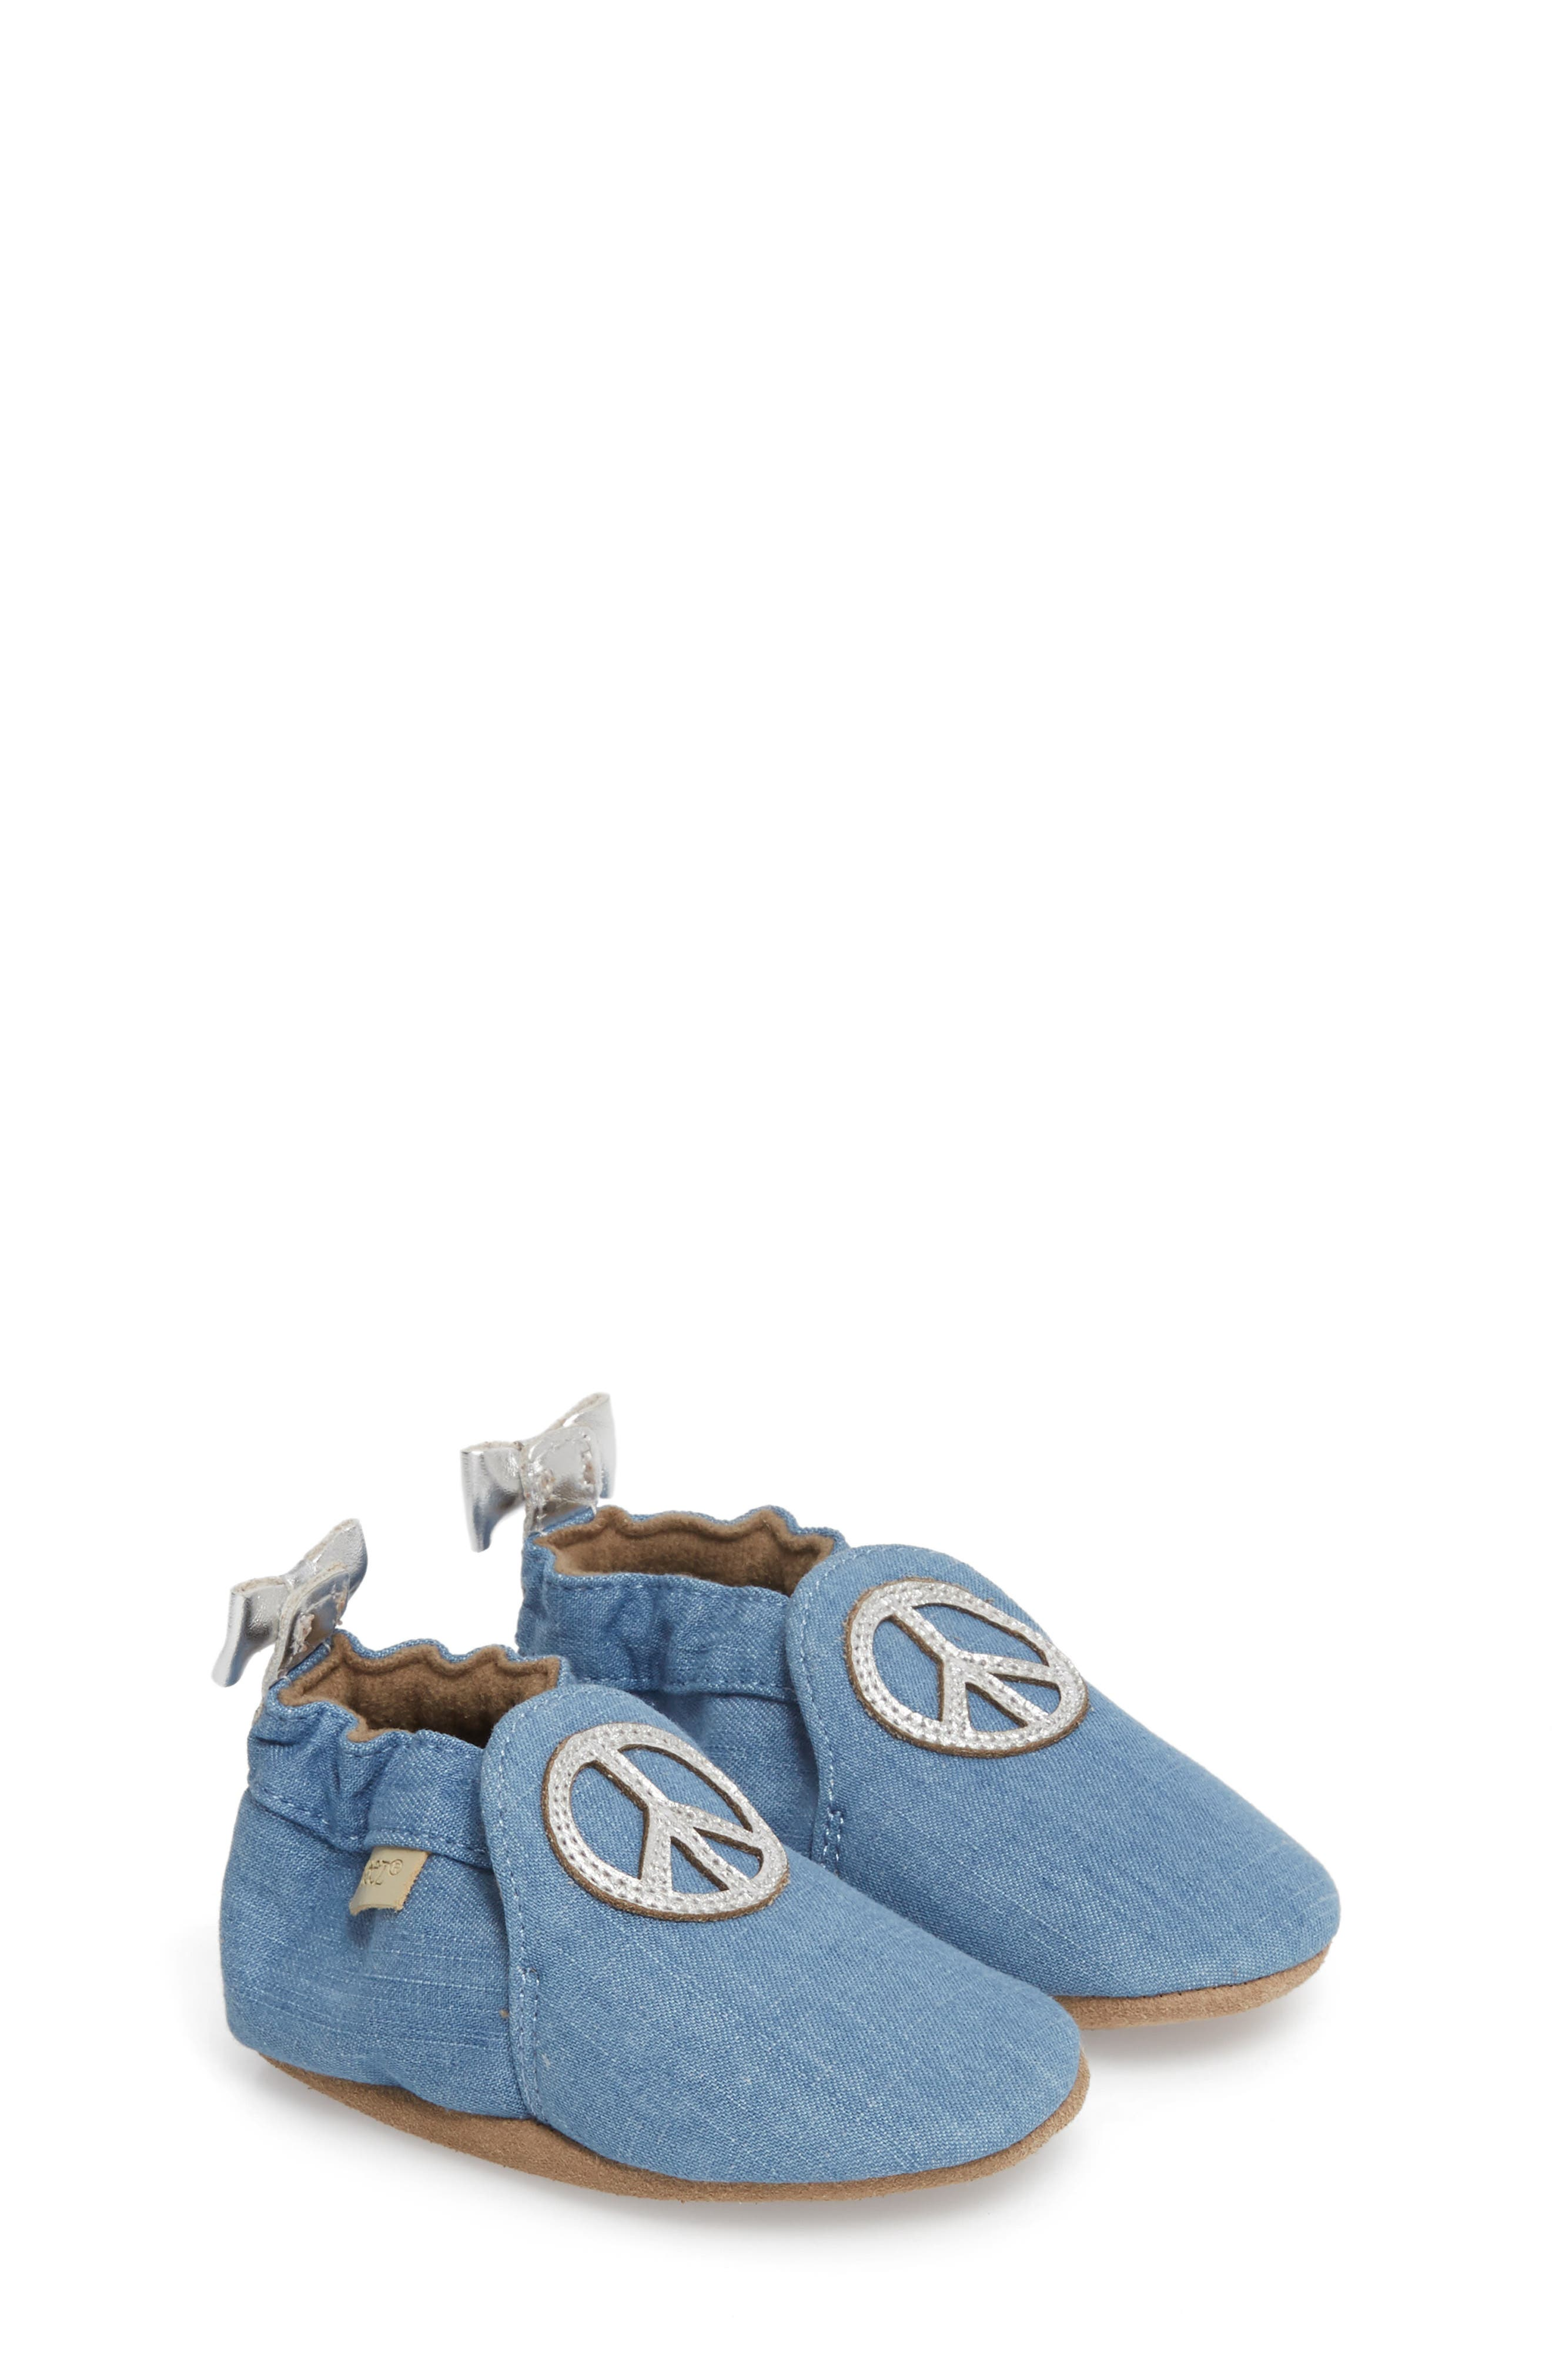 Peace Out Moccasin Crib Shoe,                         Main,                         color, BLUE